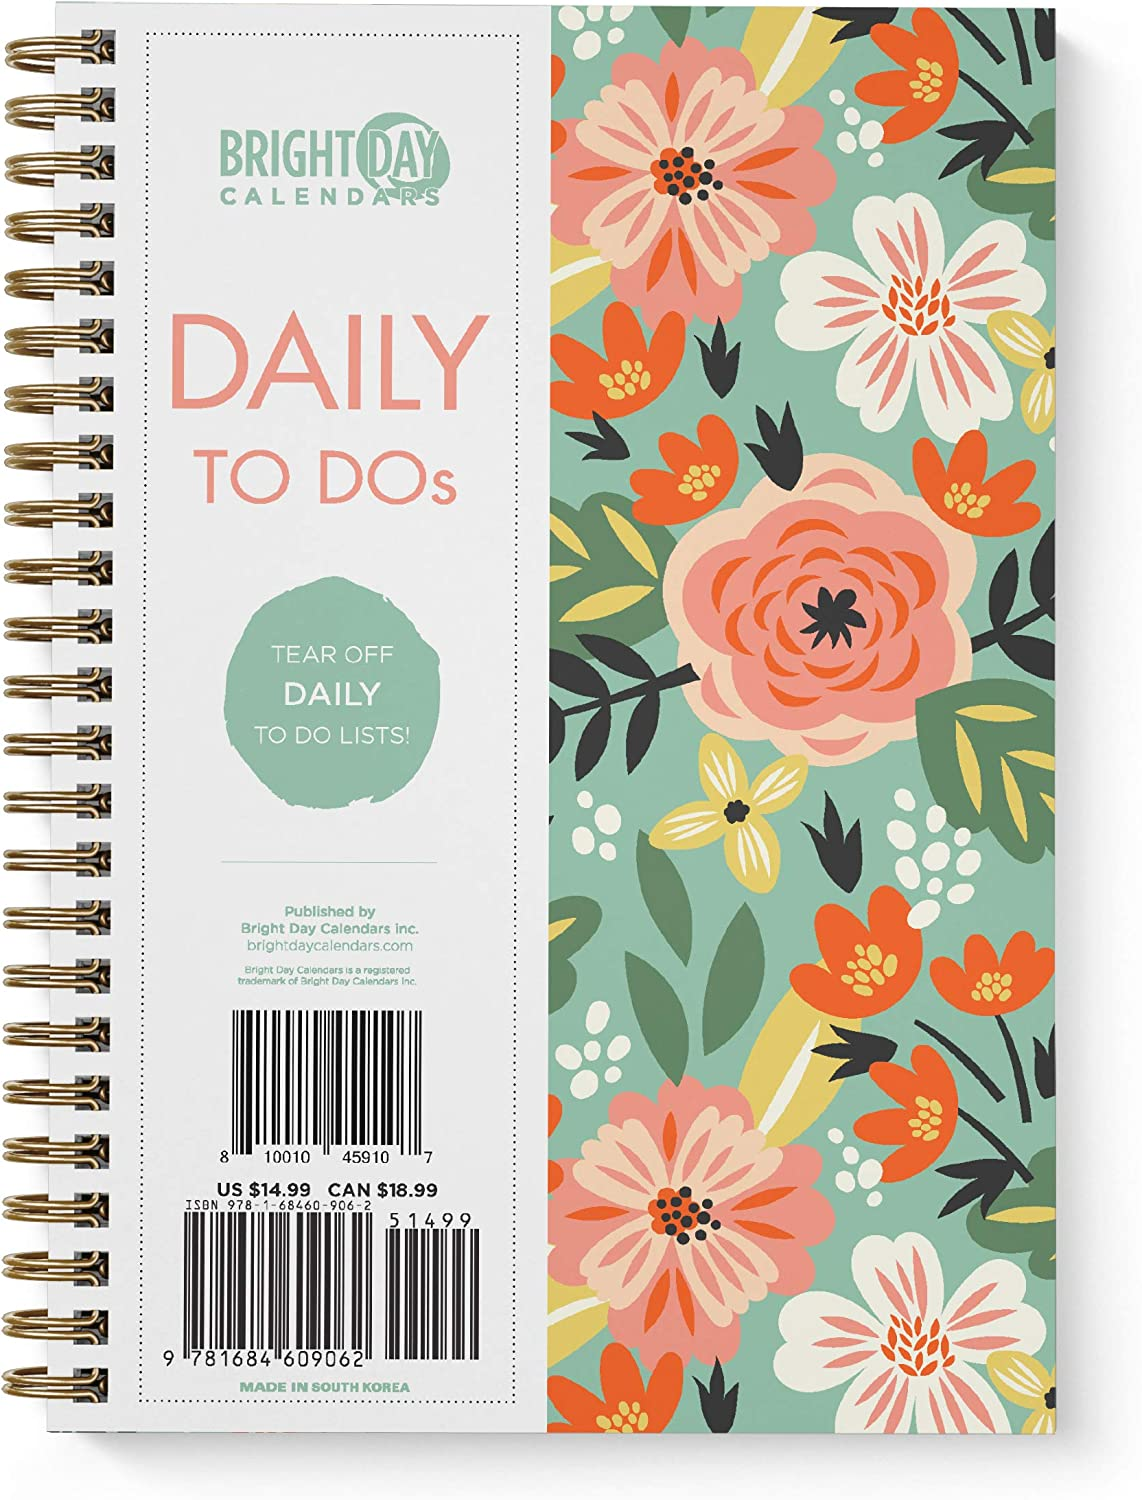 to Do List Daily Task Checklist Planner Time Management Notebook by Bright Day Non Dated Flex Cover Spiral Organizer 8.25 x 6.25 (Tropical Floral)